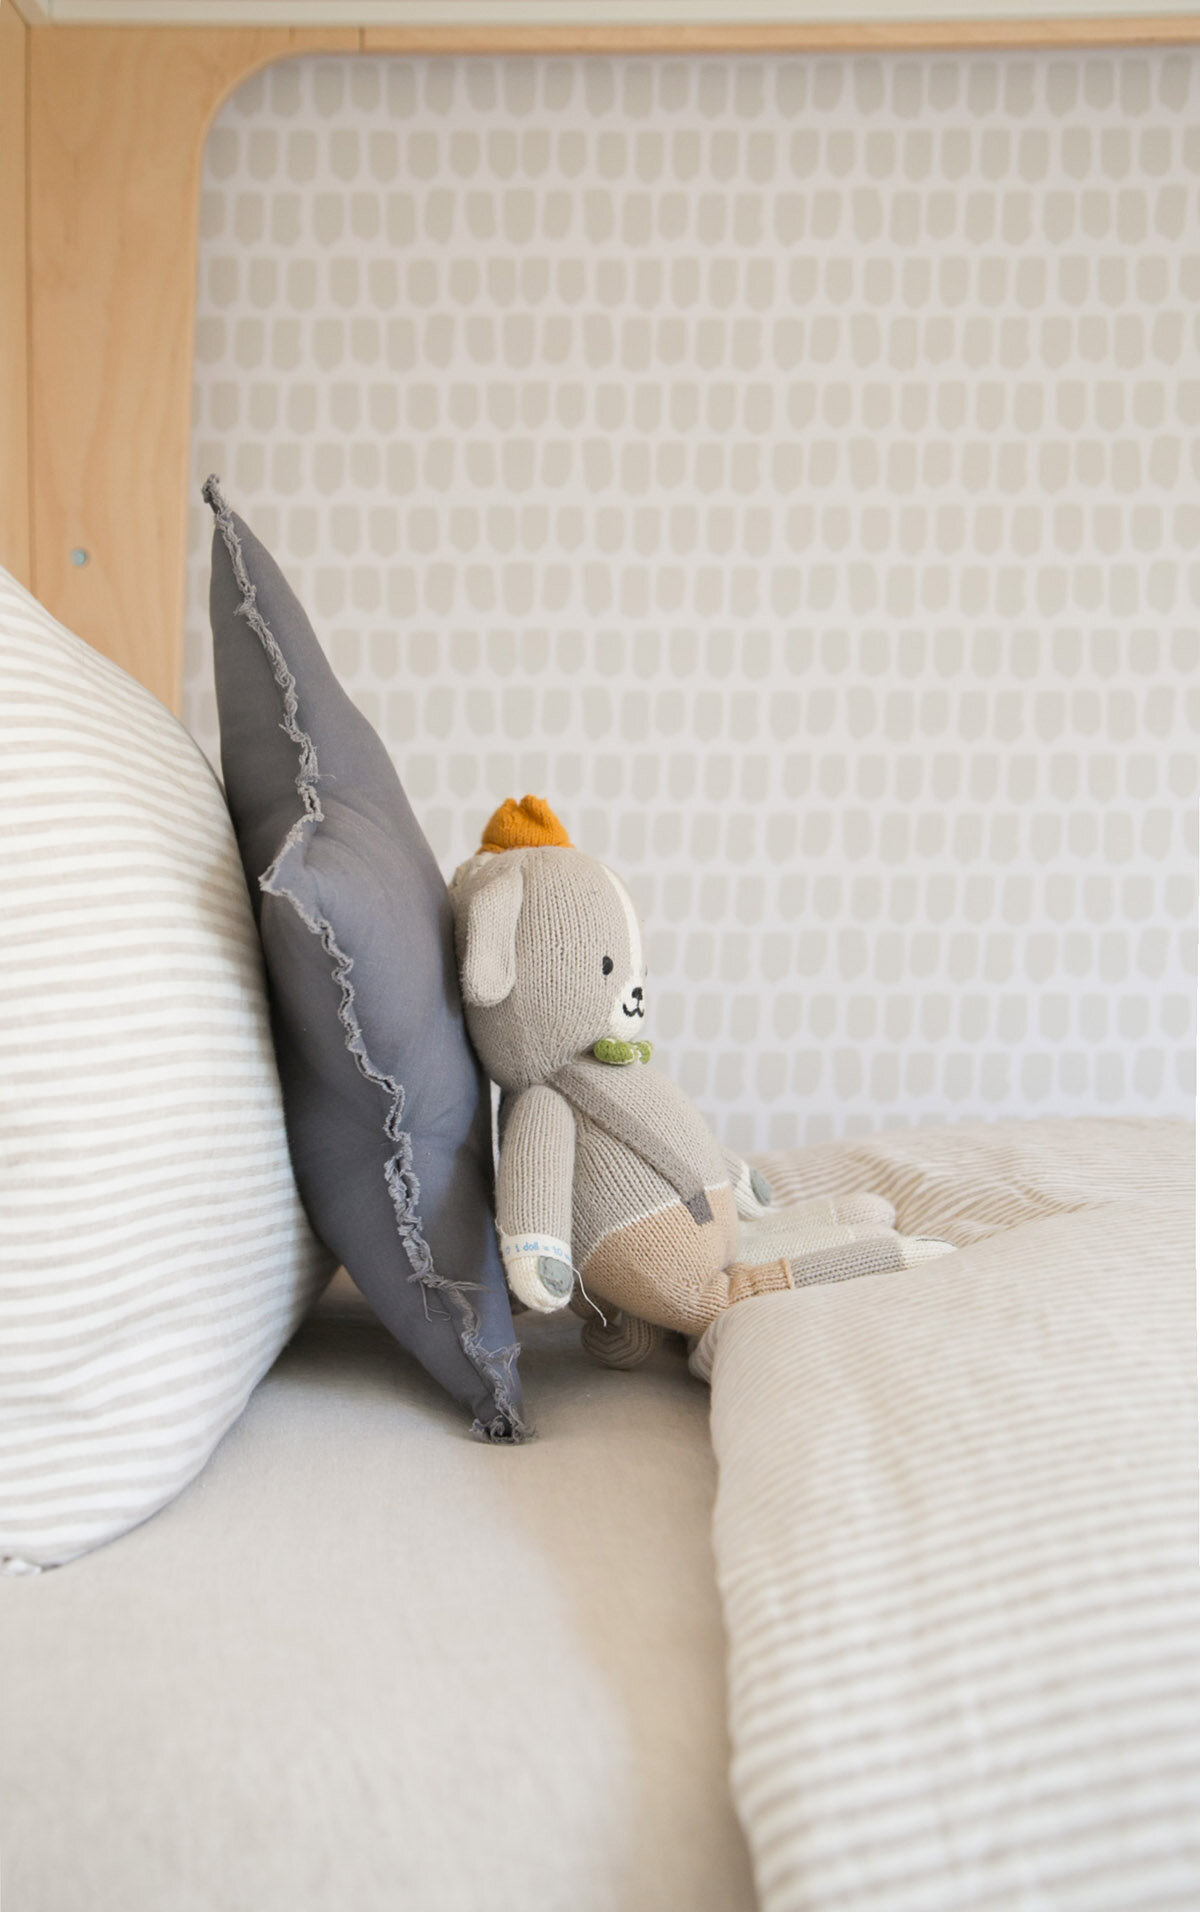 close up of the bedlinen and wallpaper with Cuddle + Kind softie